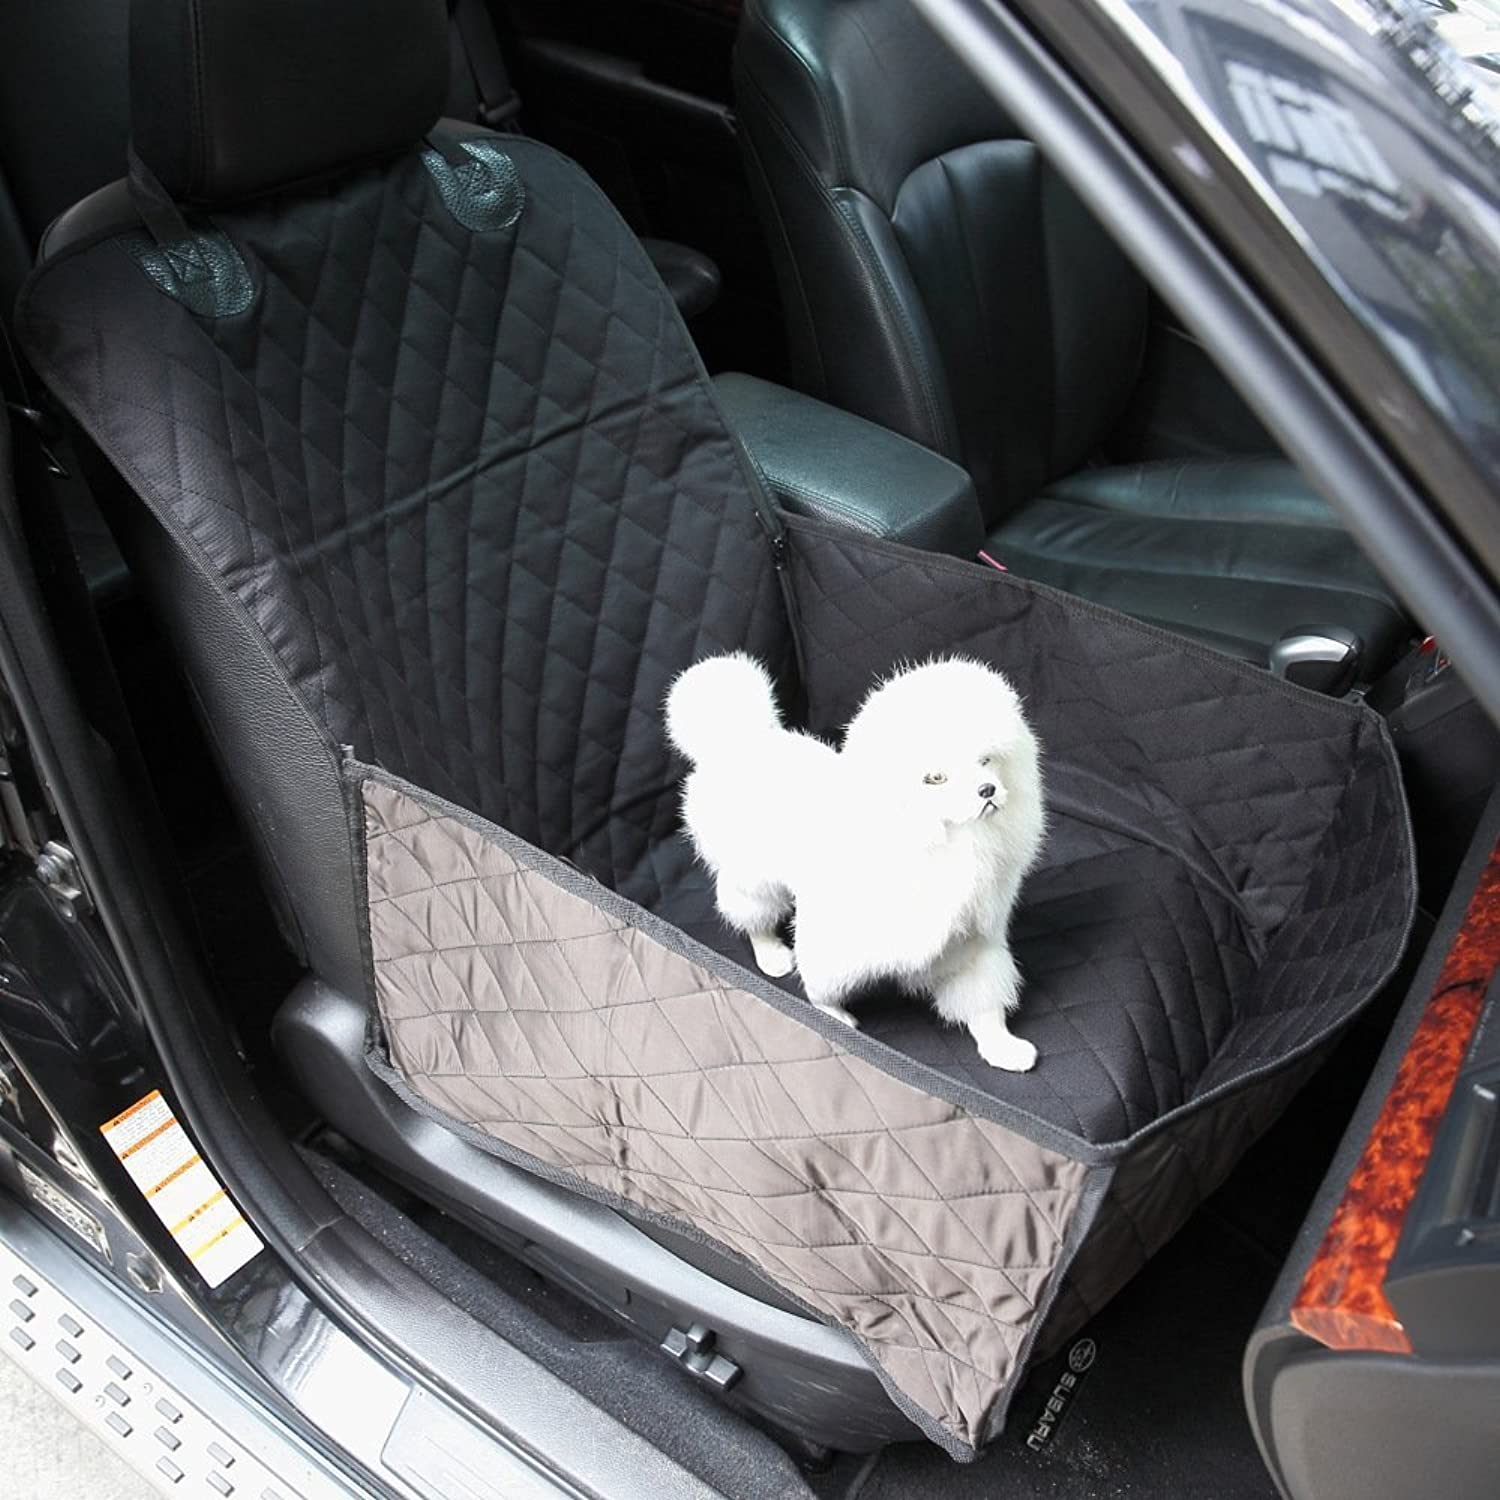 Pet Front Seat Cover for Cars  Black, GEMEK Front Seat Cover for Dogs Waterproof & Nonslip Backing, Universal Pet Car Seat Cover for Cars, Trucks & SUVs